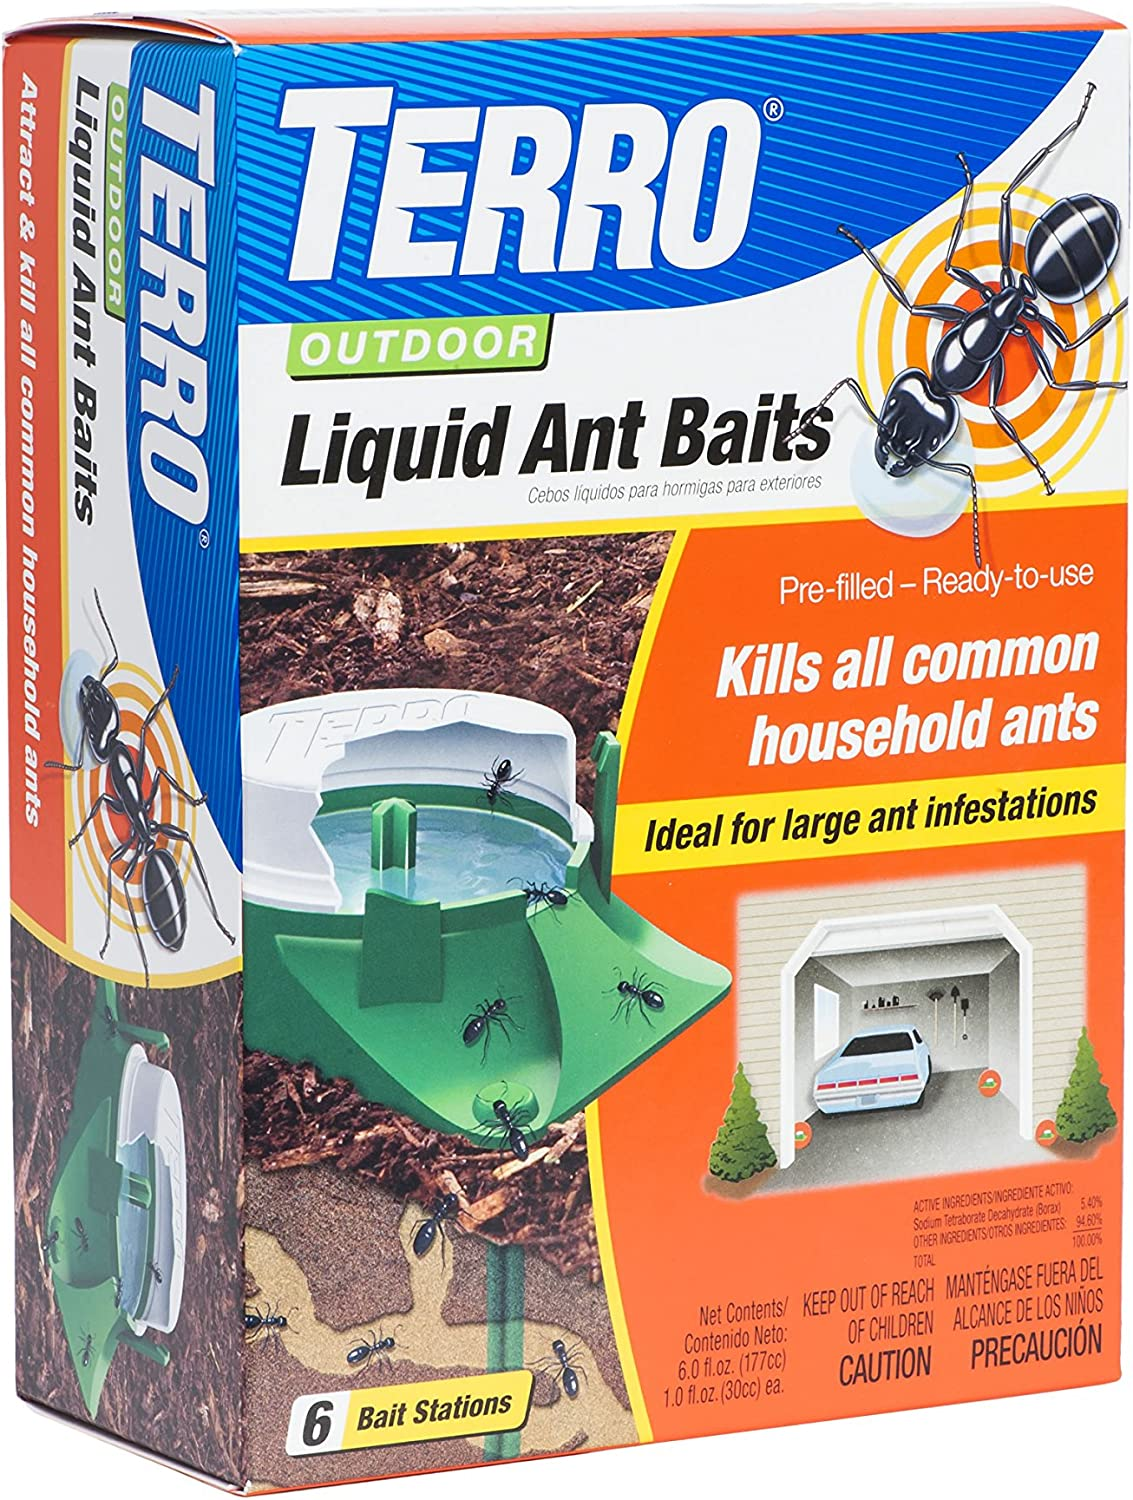 Dog Safe Ant Killers - Exterminate Ants while Your Dog is Completely Protected! 1